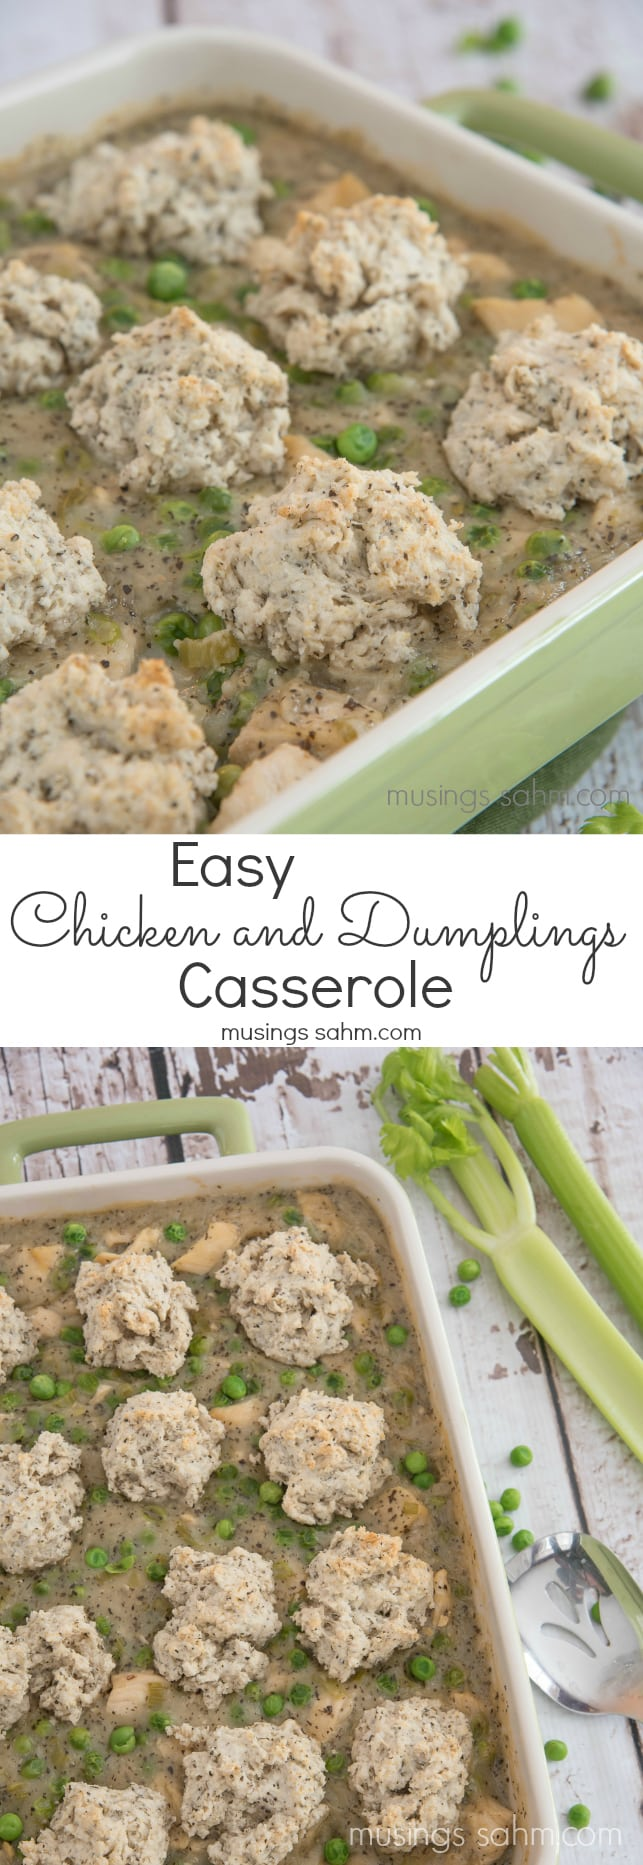 Chicken and Dumplings Casserole: loaded with chicken and veggies in a savory sauce seasoned with basil, the homemade biscuits add the perfect touch to this favorite family meal.